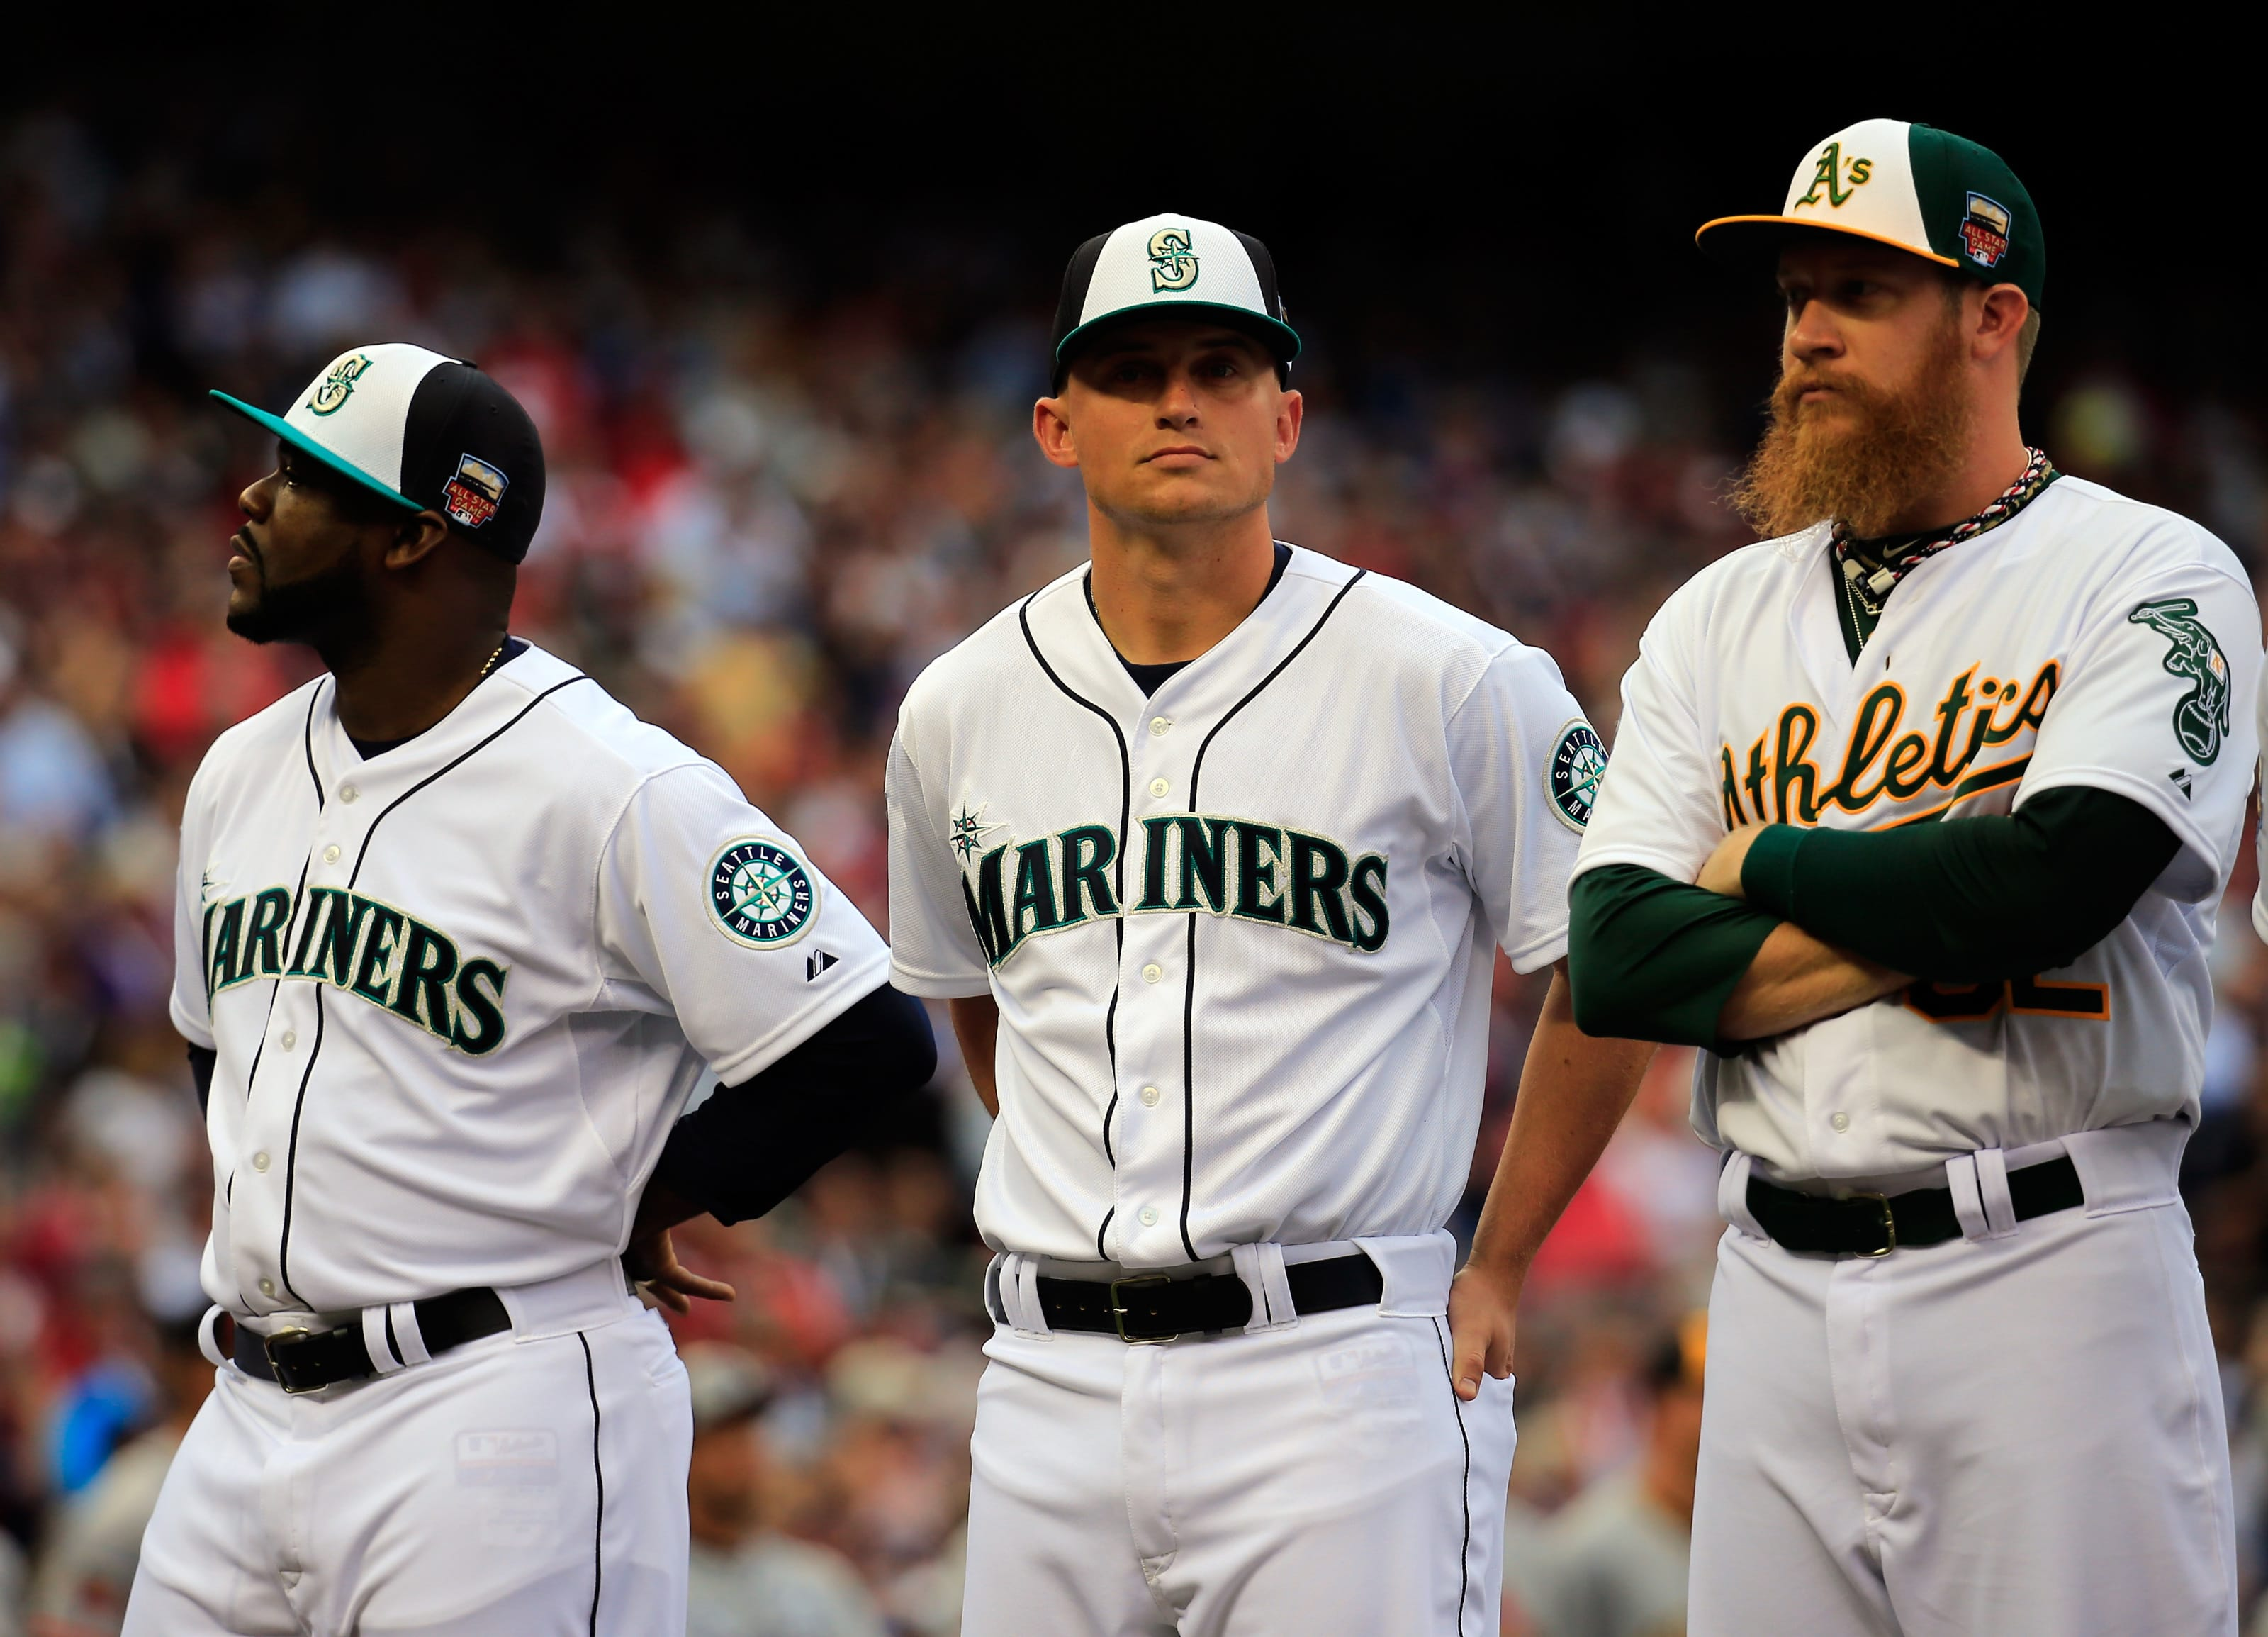 Seattle Mariners: Kyle Seager and Fernando Rodney at the 2014 All-Star game.